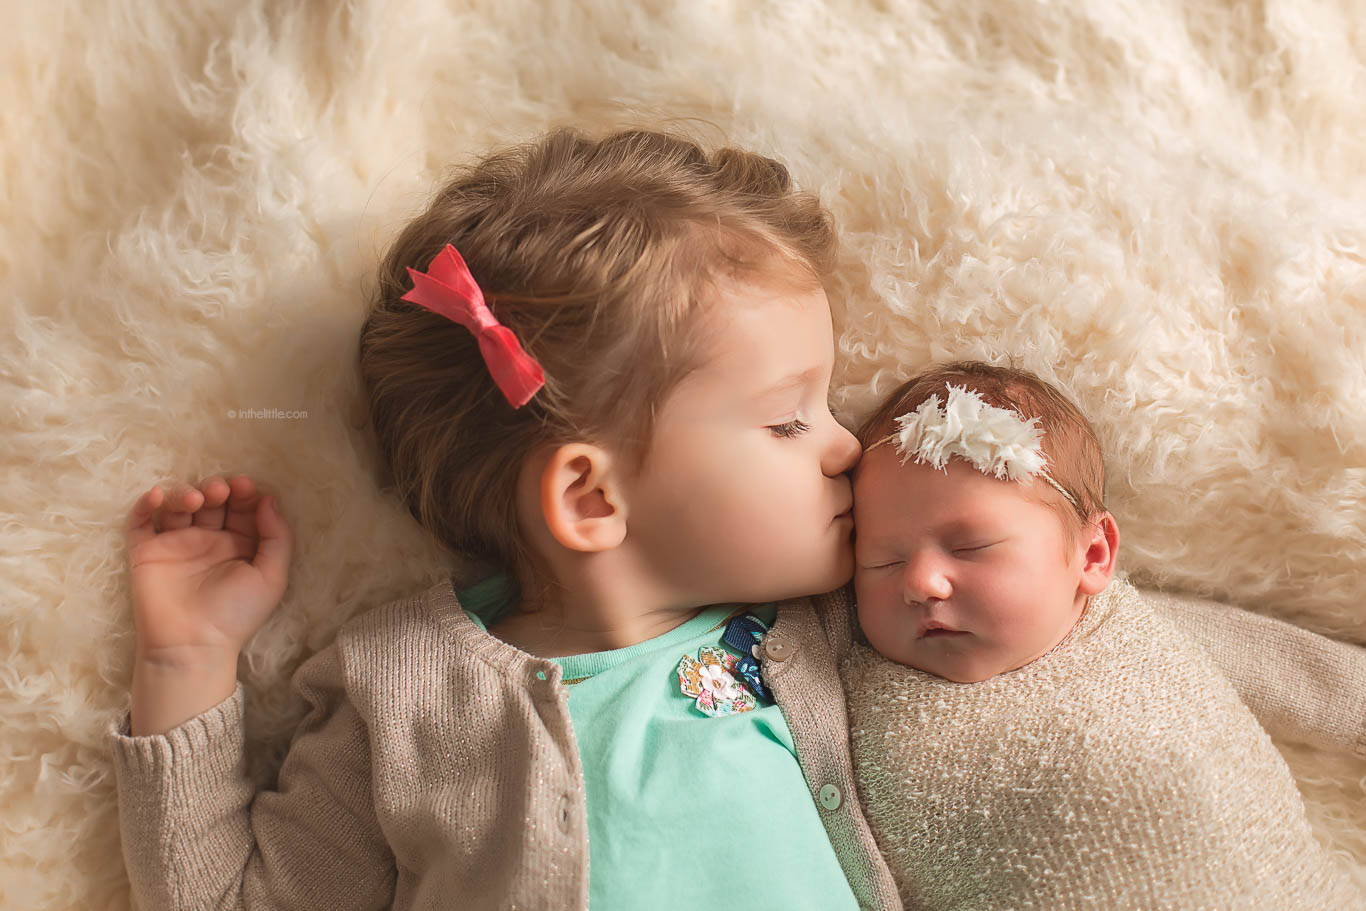 Newborn Baby Sibling Pose Photo Ideas St. Louis MO